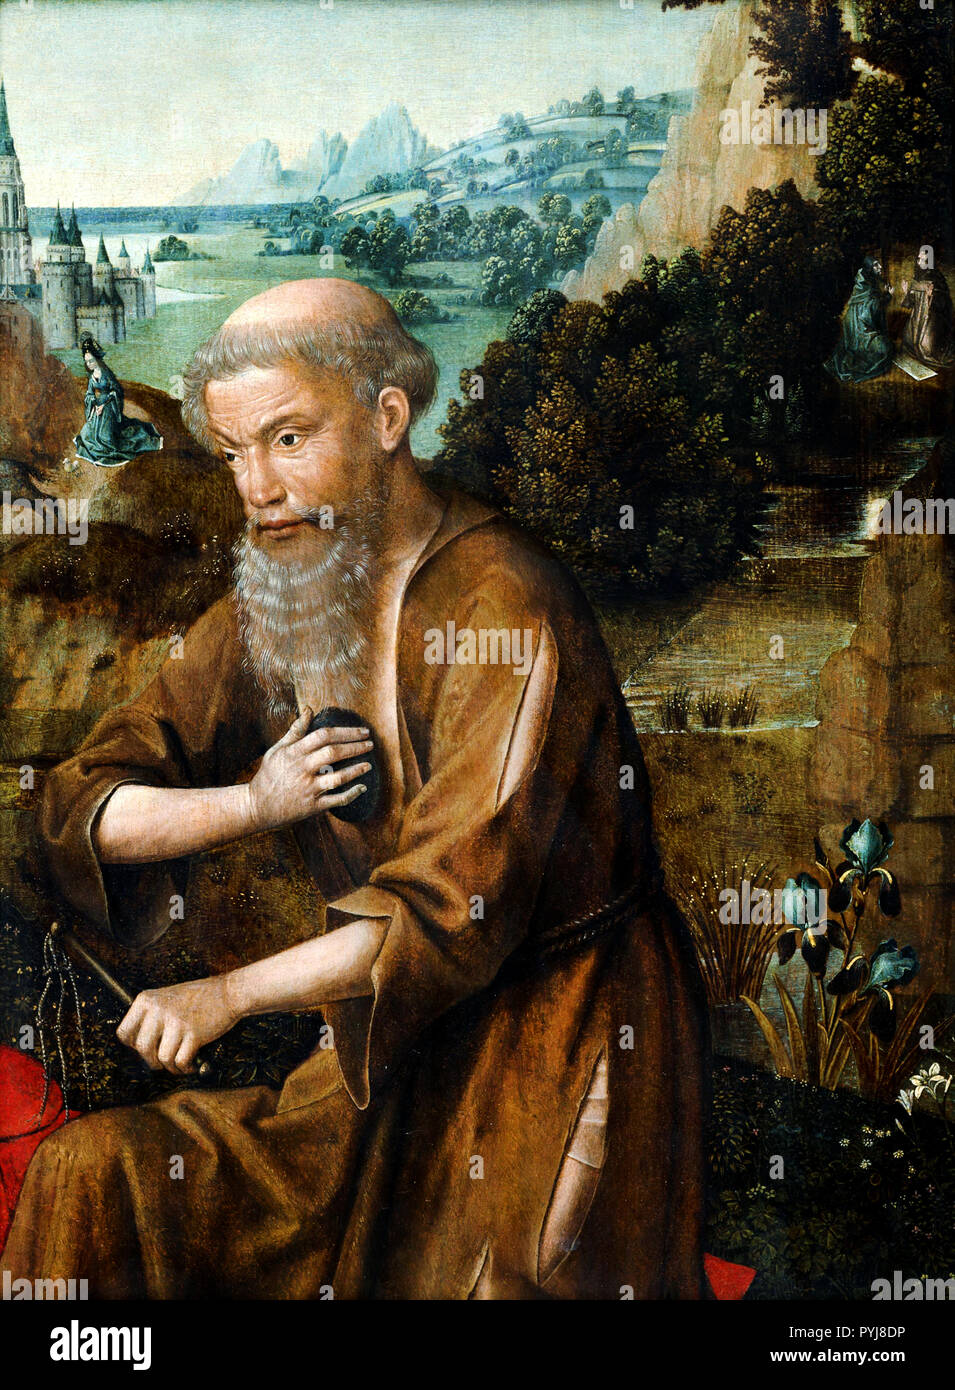 Master of The Legend of St. Lucy, St. Jerome, 15th century, Oil on panel, National Museum of Western Art, Tokyo, Japan. - Stock Image